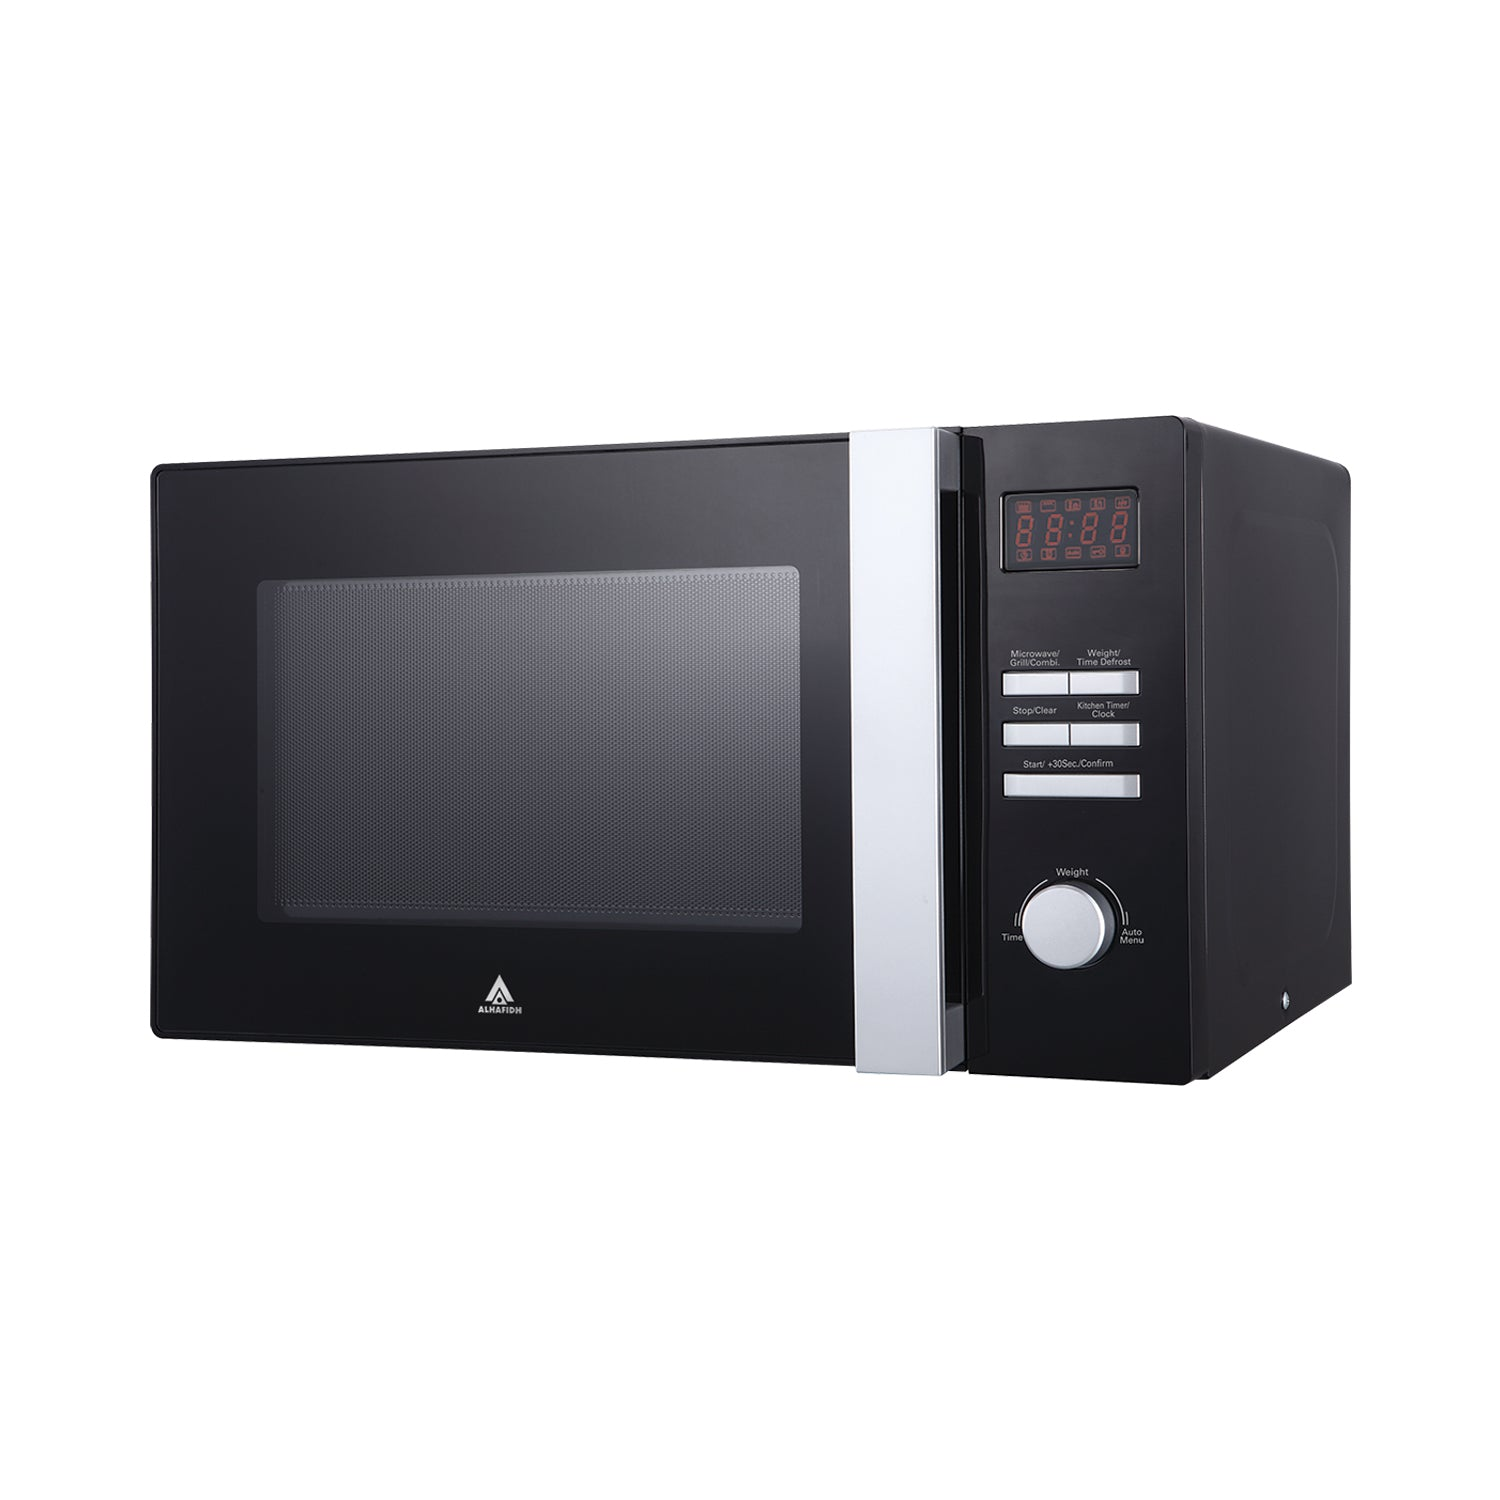 Grill Microwave Oven 28 Liters MWHA-28G2M